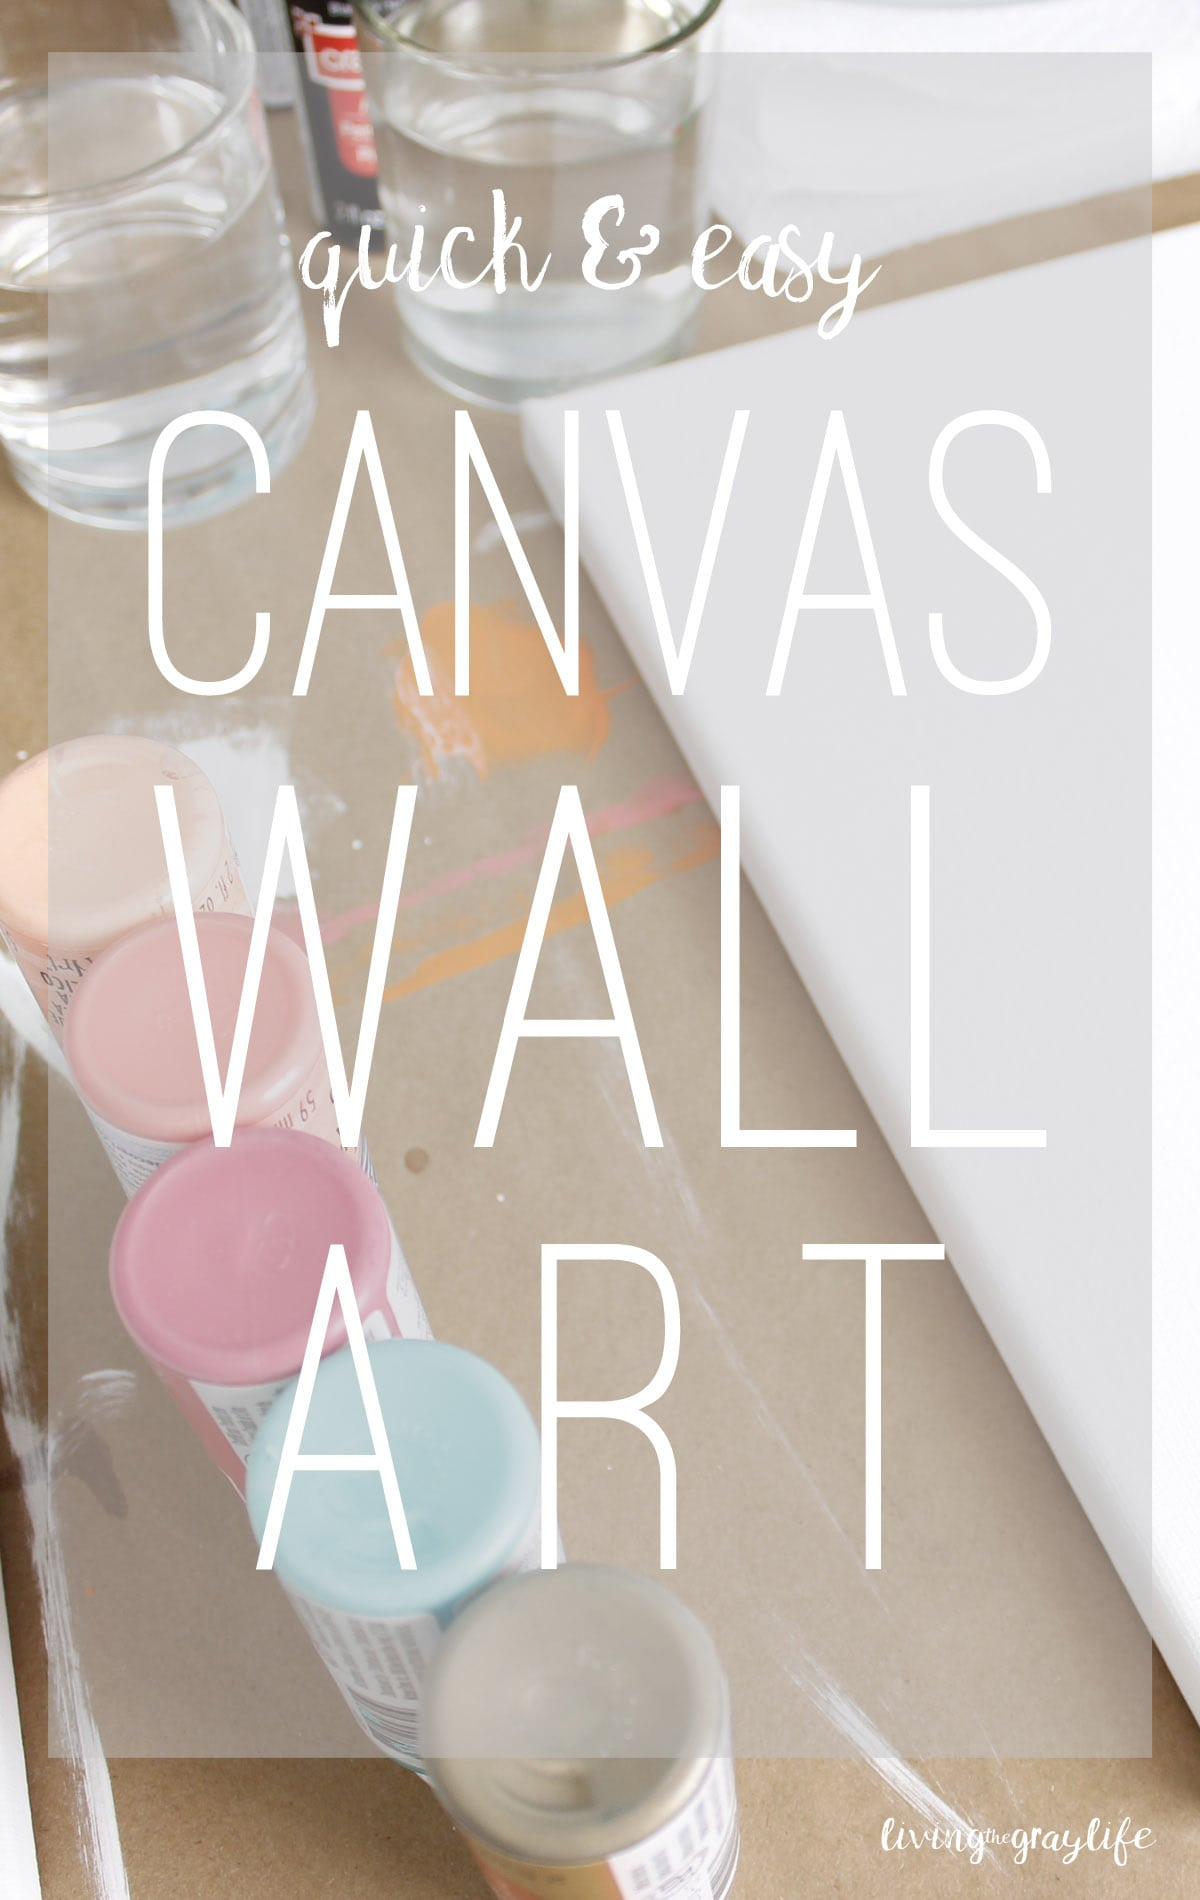 Looking For A Quick, Easy DIY To Do This Weekend? These DIY Canvases Are